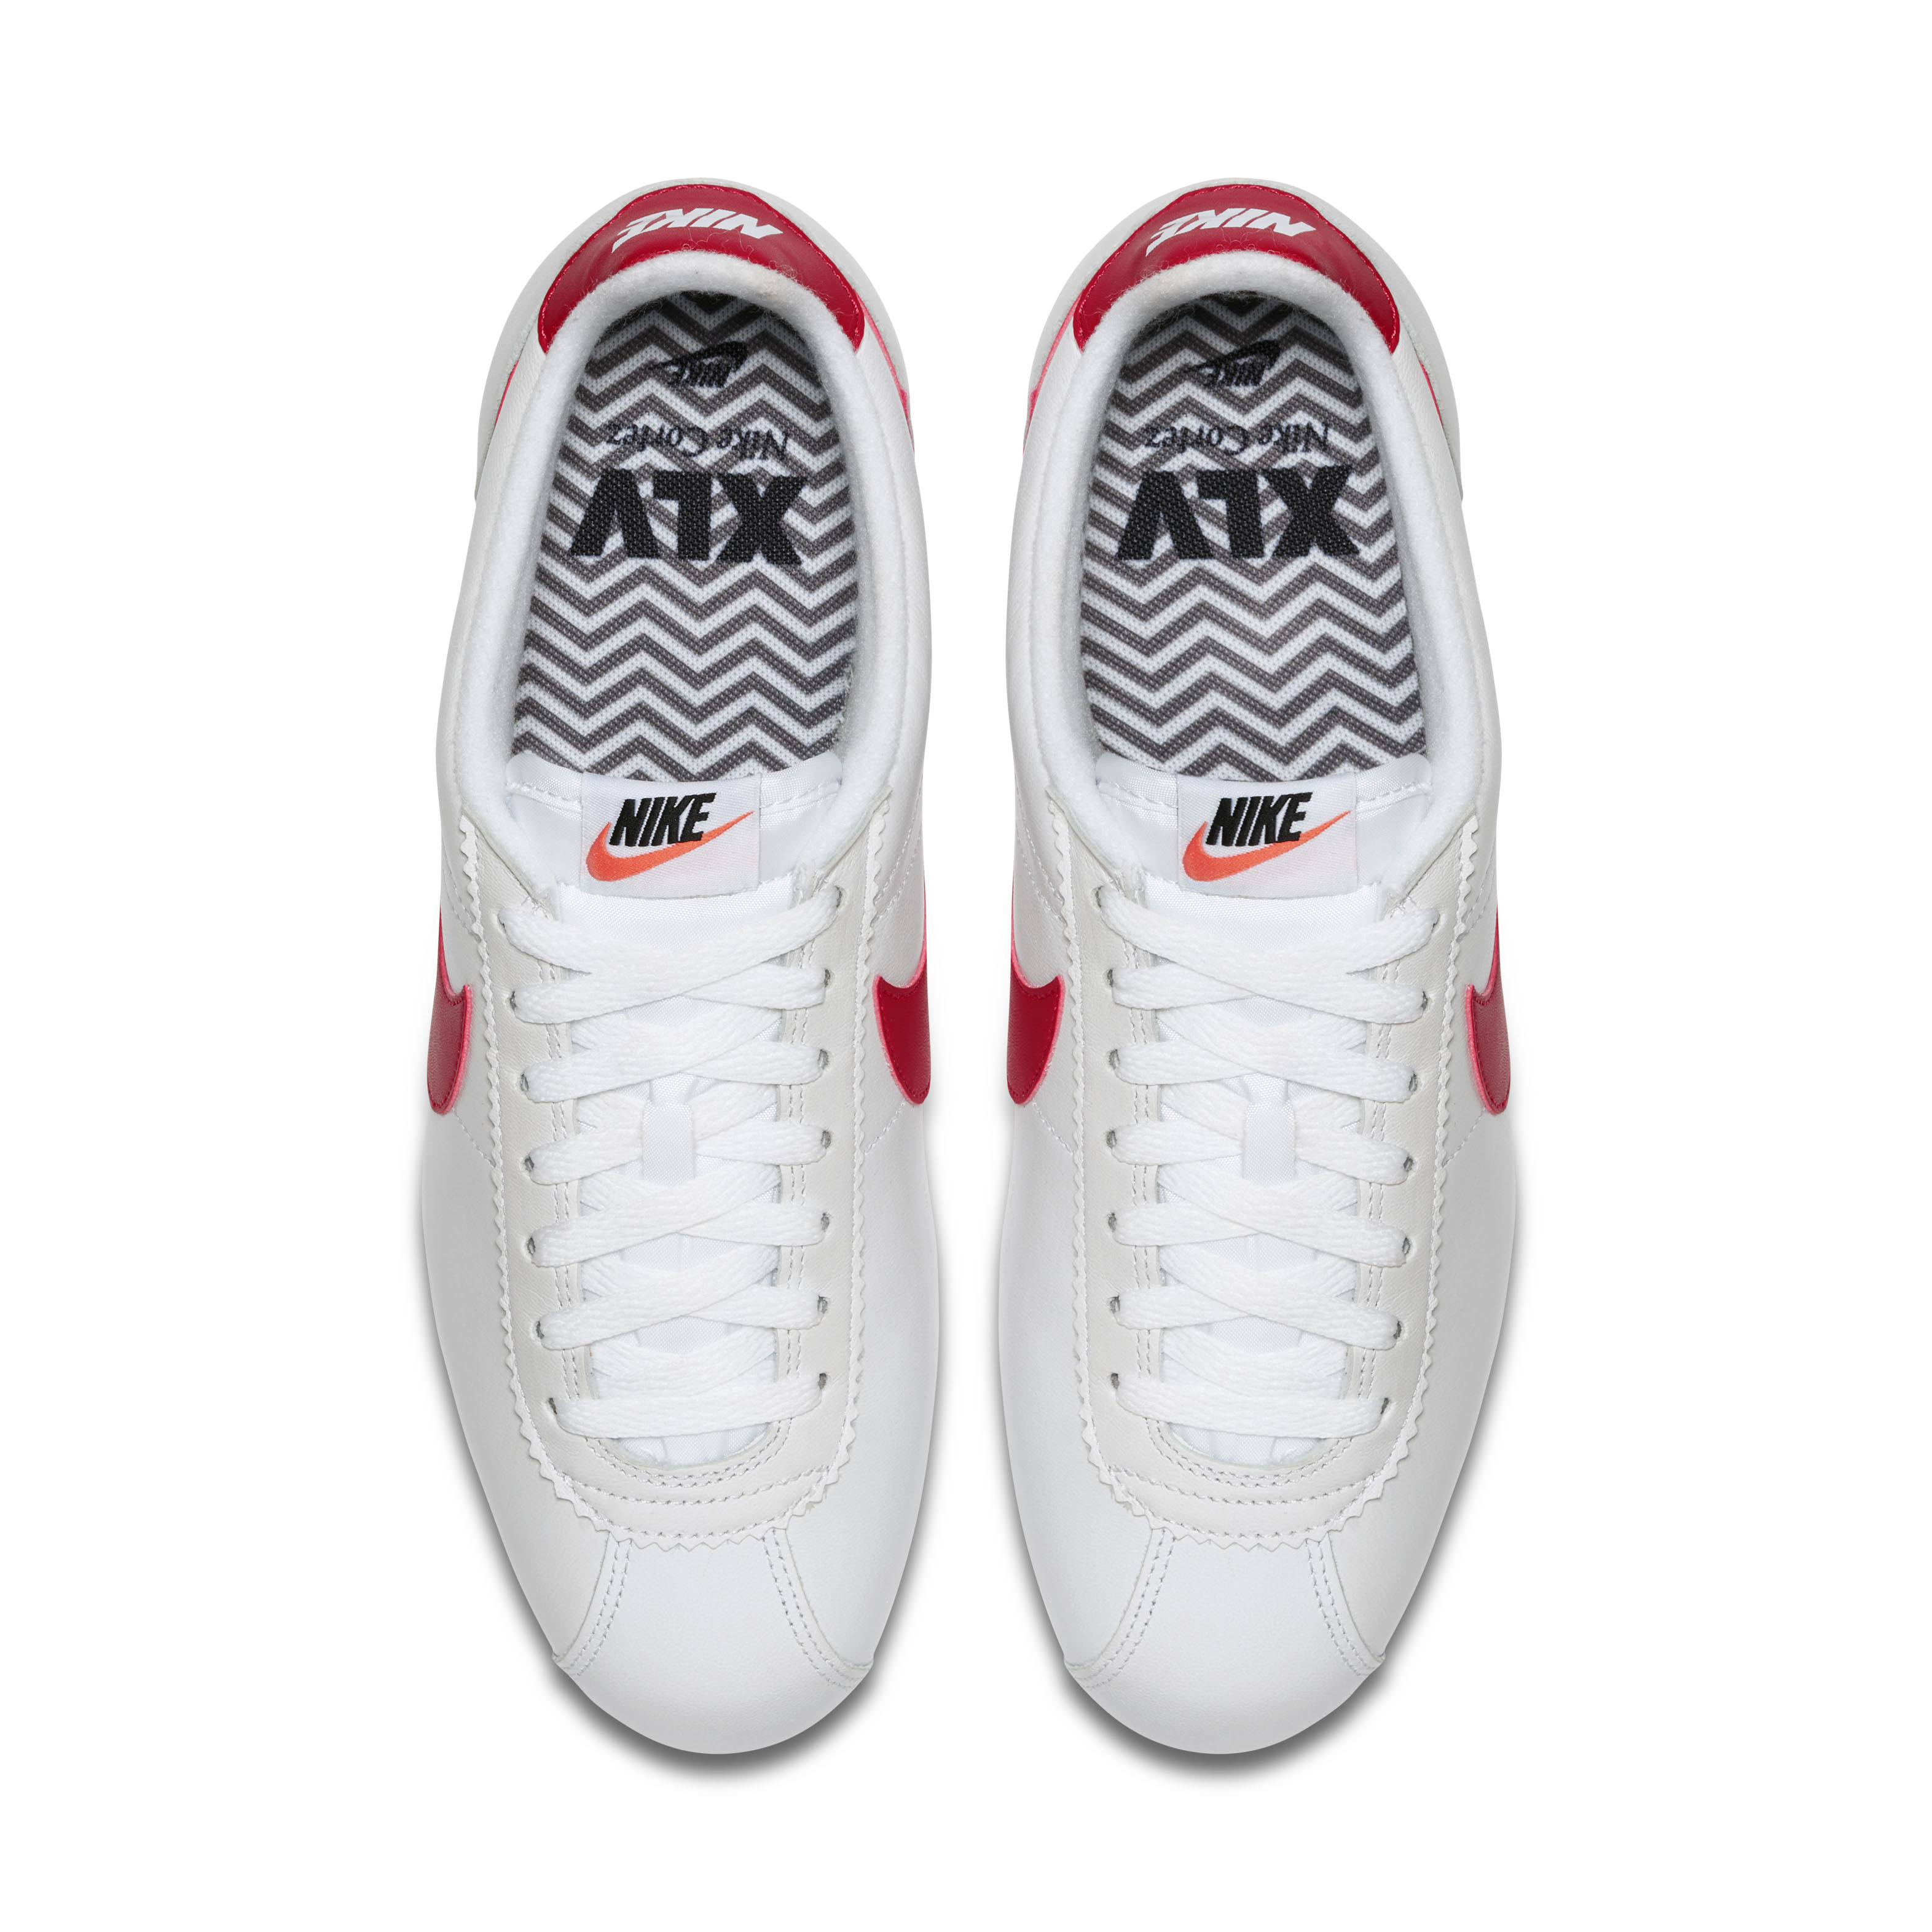 reputable site df2f4 9e54e CELEBRATING 45 YEARS OF NIKE CORTEZ IN SPORT, STYLE AND CULTURE - MASSES